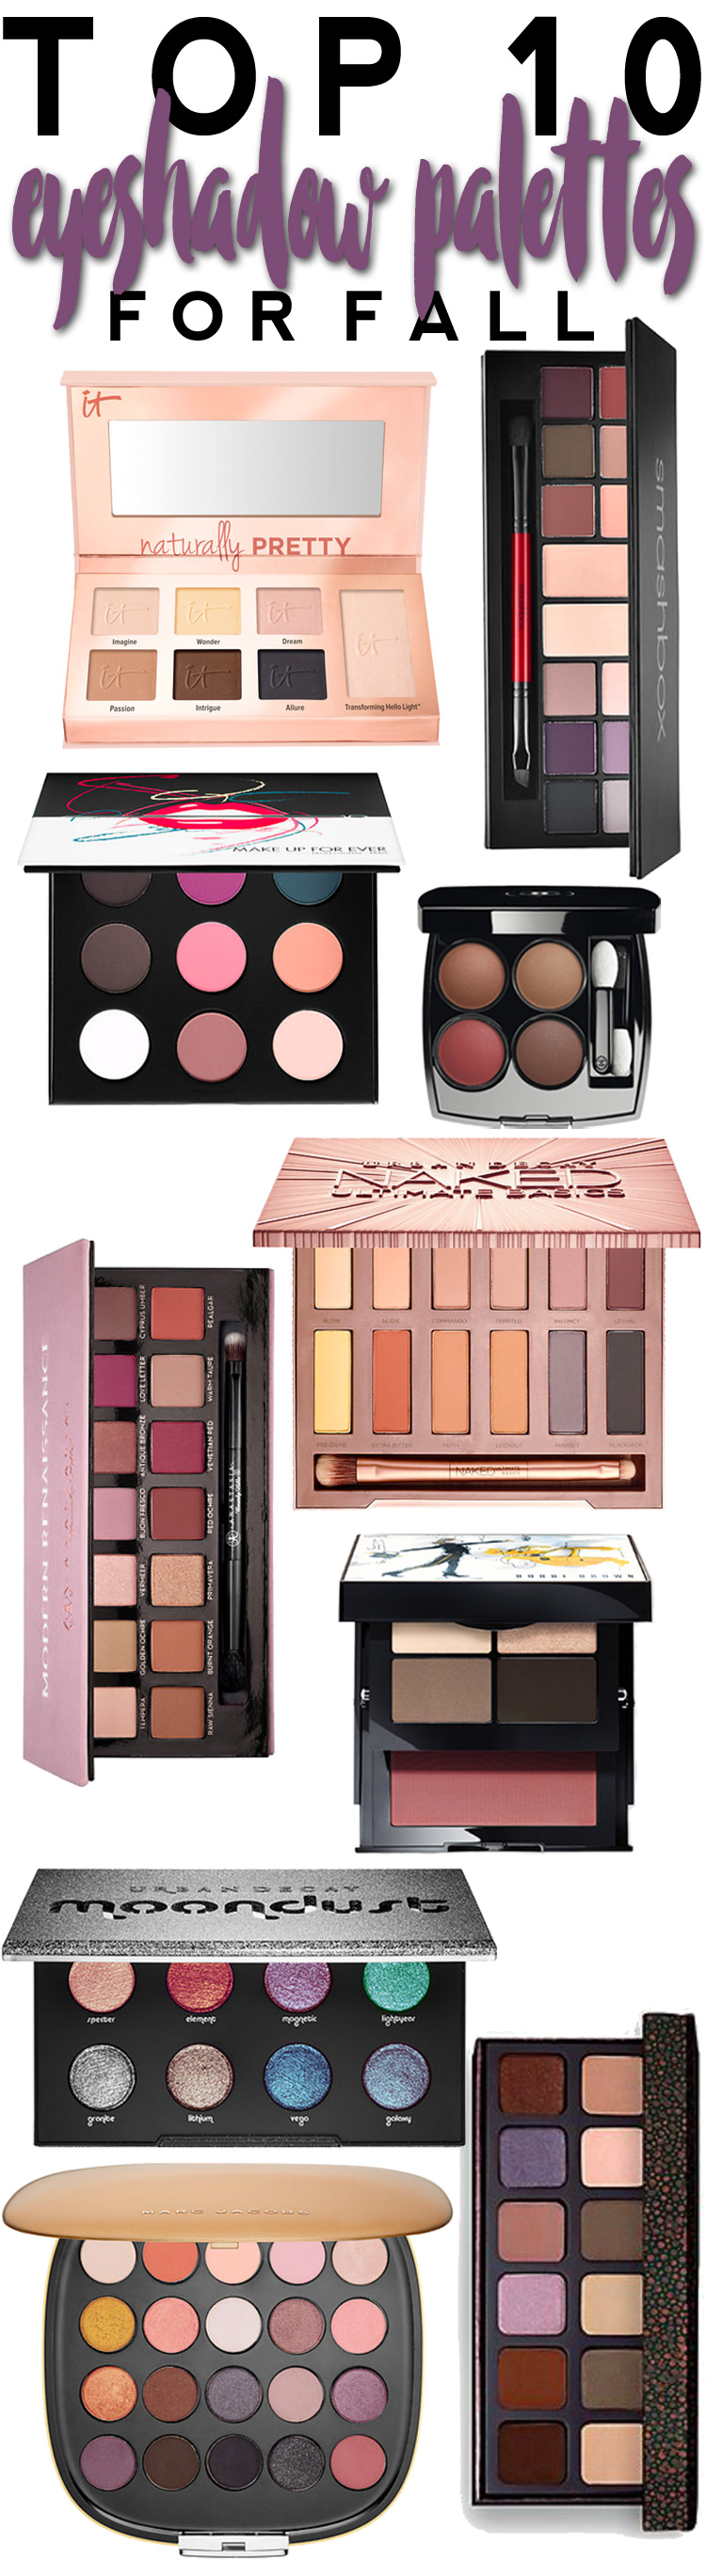 Top 10 Eyeshadow Palettes for Fall